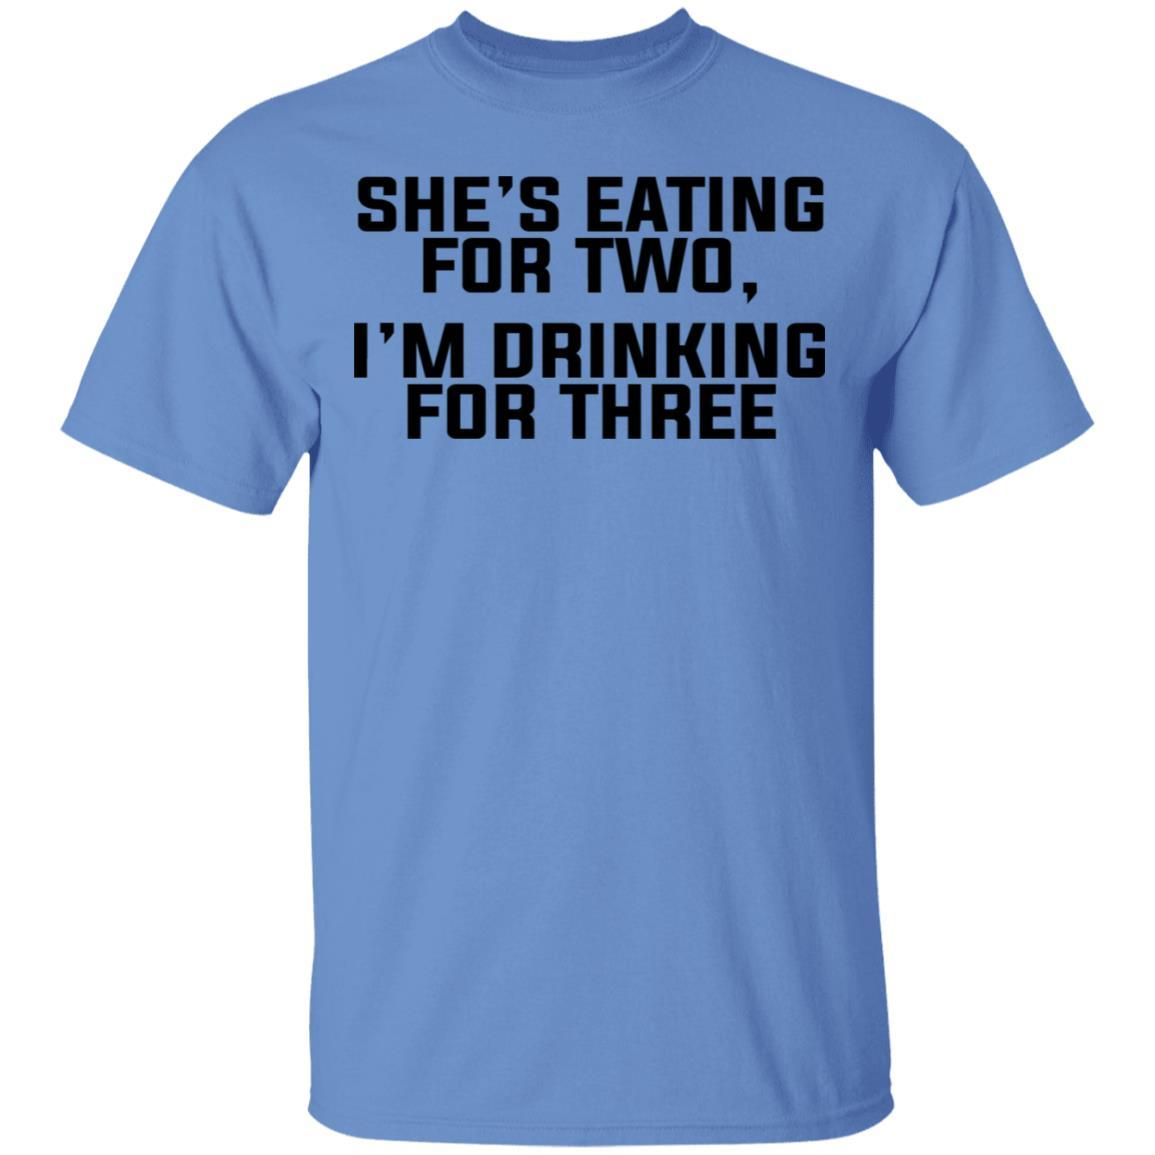 She's Eating For Two I'm Drinking For Three T-Shirts, Hoodies 1049-9955-86894819-48160 - Tee Ript